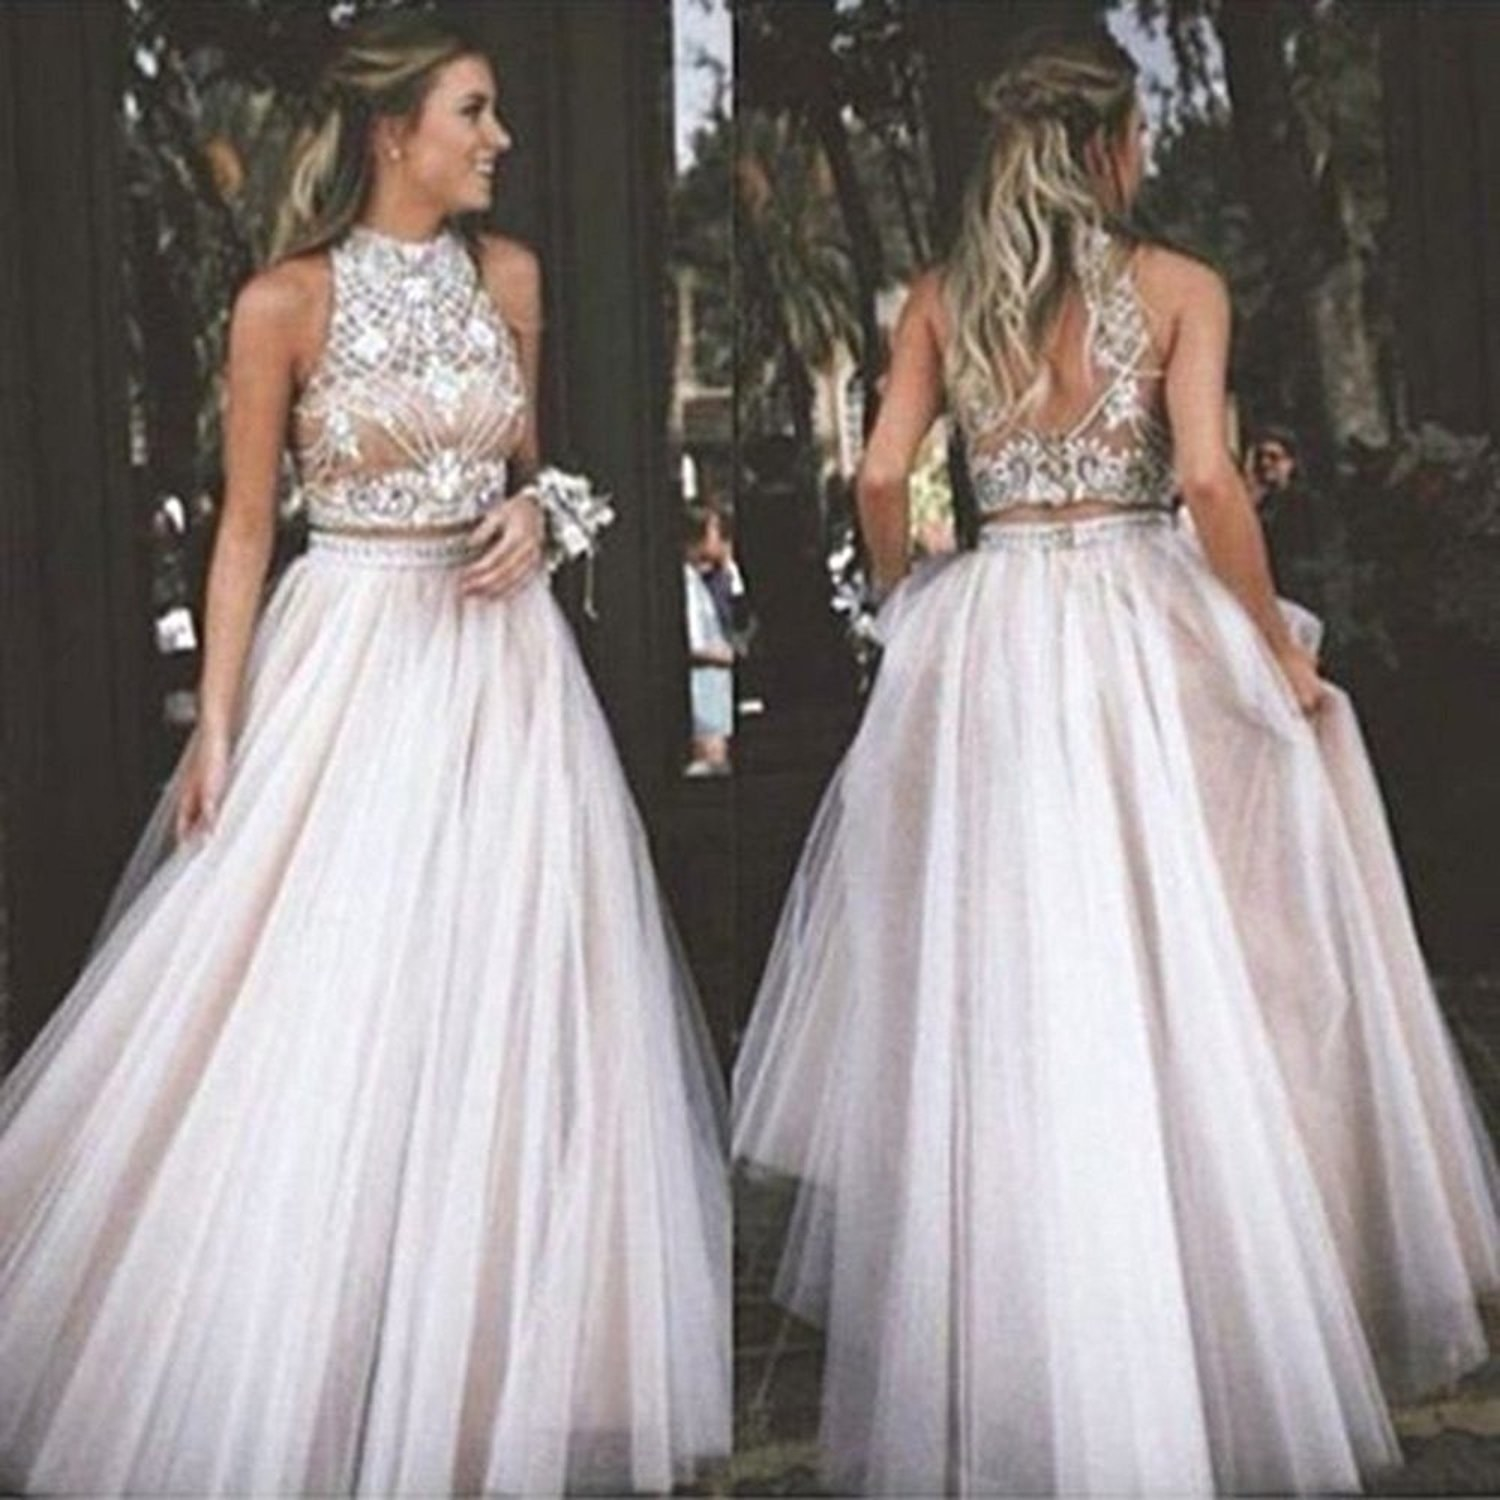 20 Gorgeous Wedding Dresses You Won't Believe You Can Find On Amazon